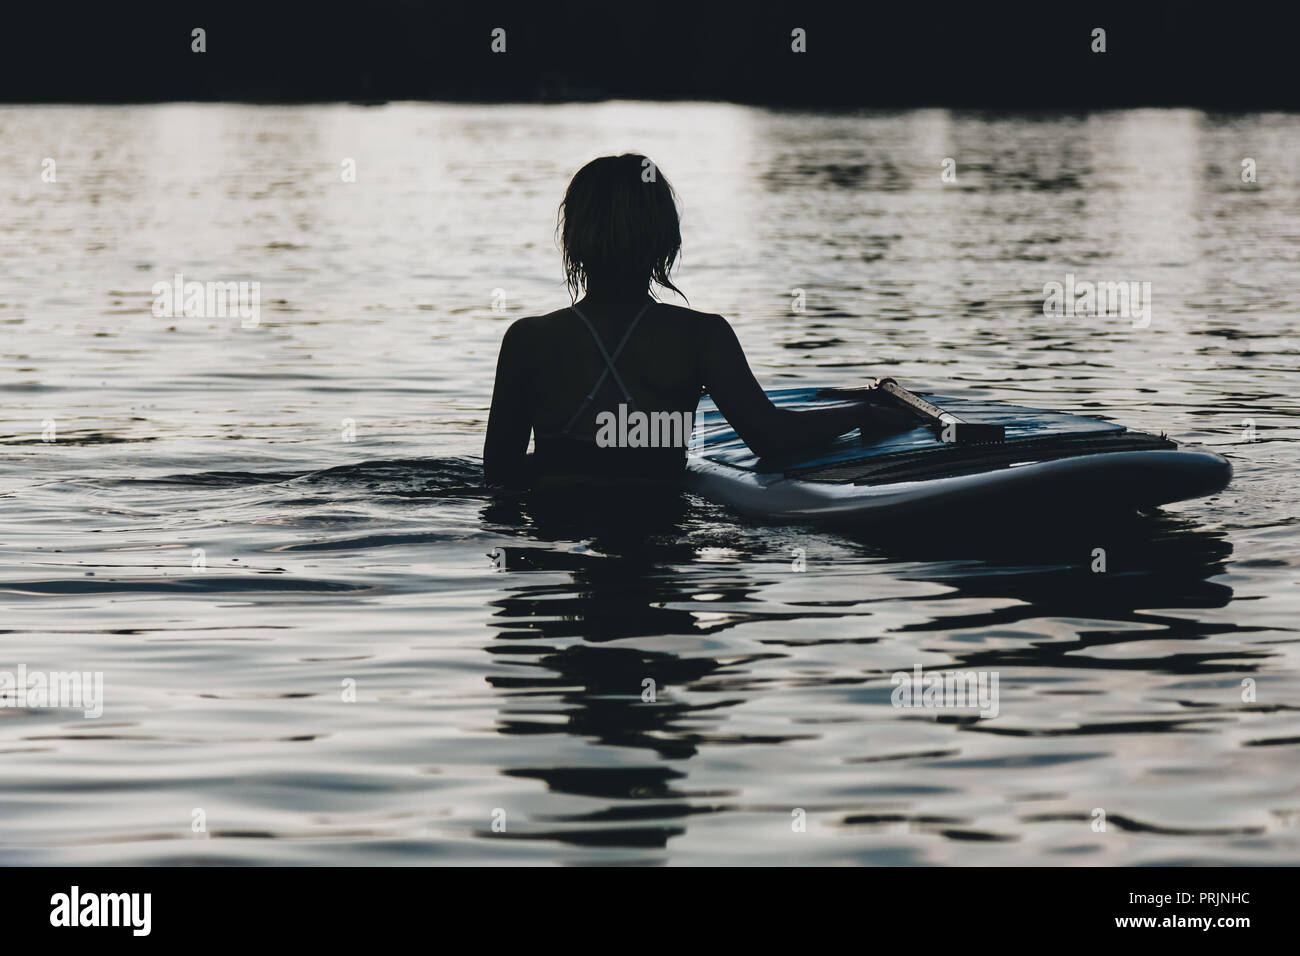 silhouette of woman in water with paddle board - Stock Image